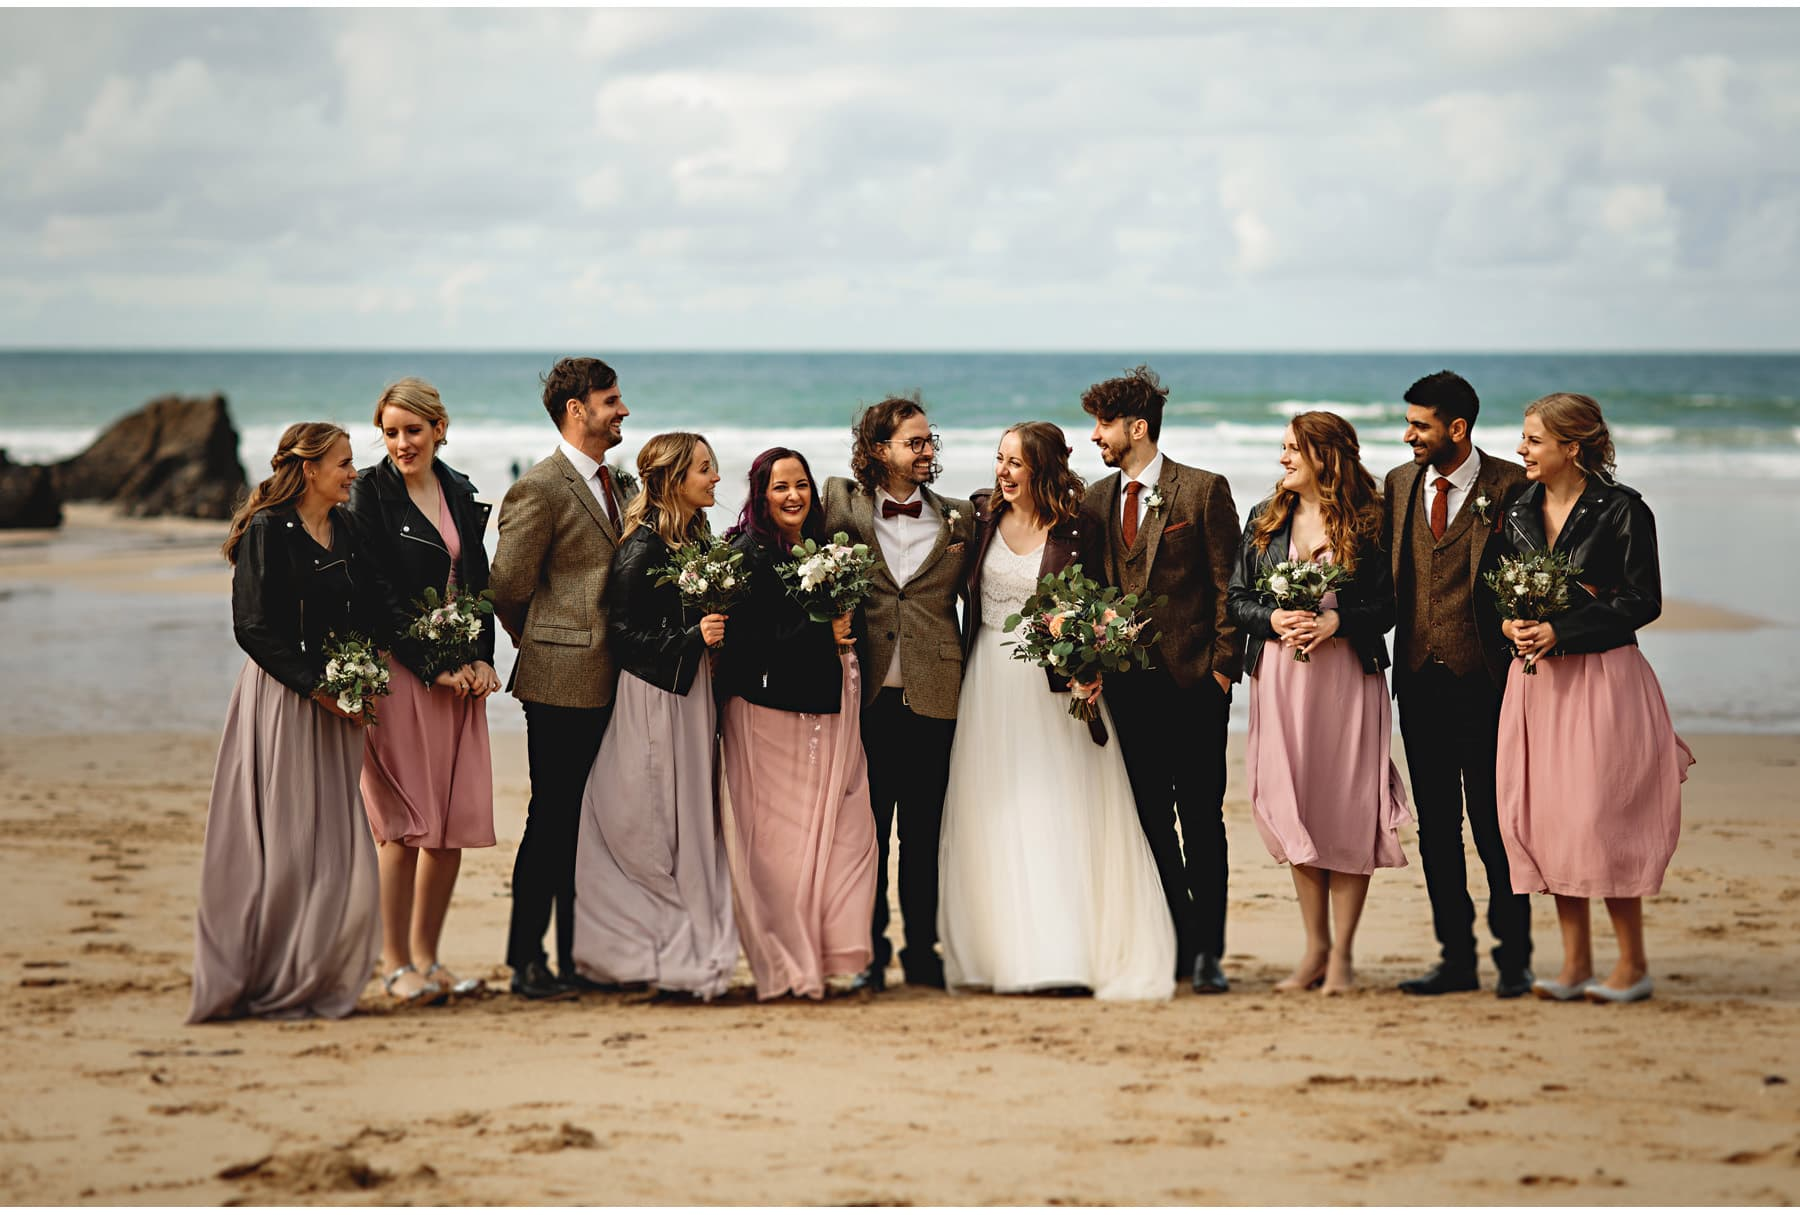 the bride & groom with their bridal party on the beach